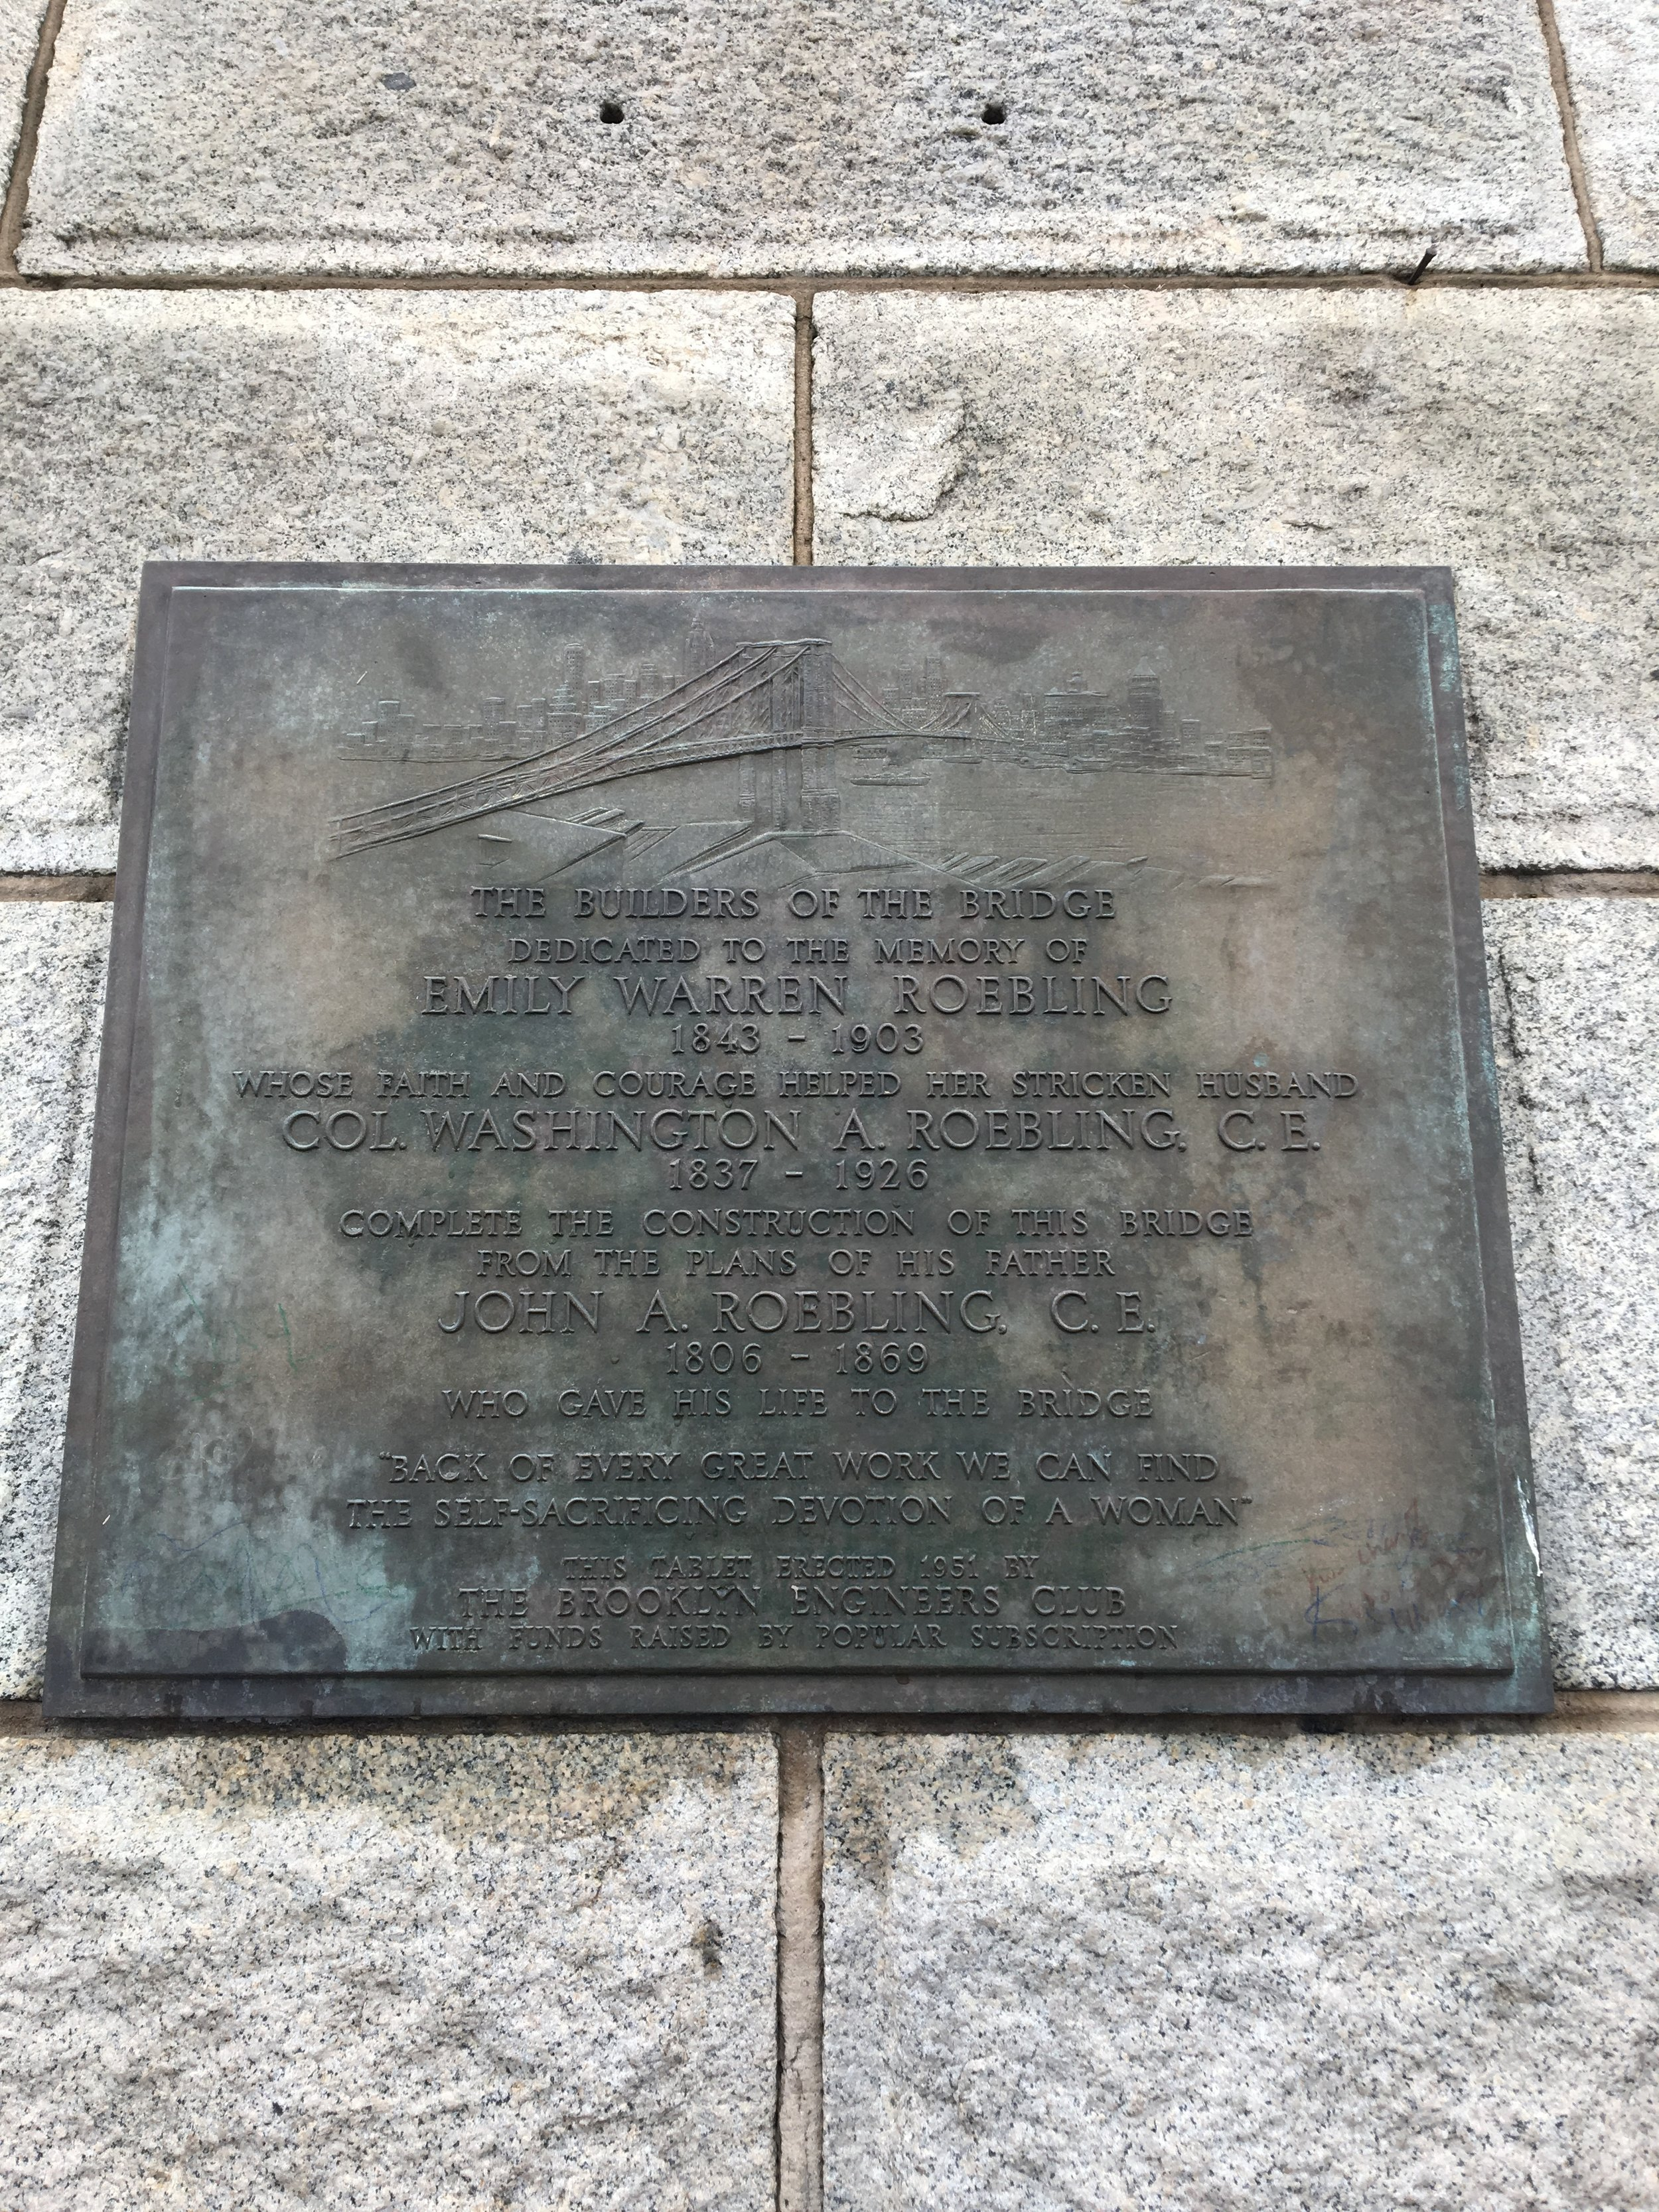 Emily Warren Roebling plaque on Brooklyn Bridge, NY